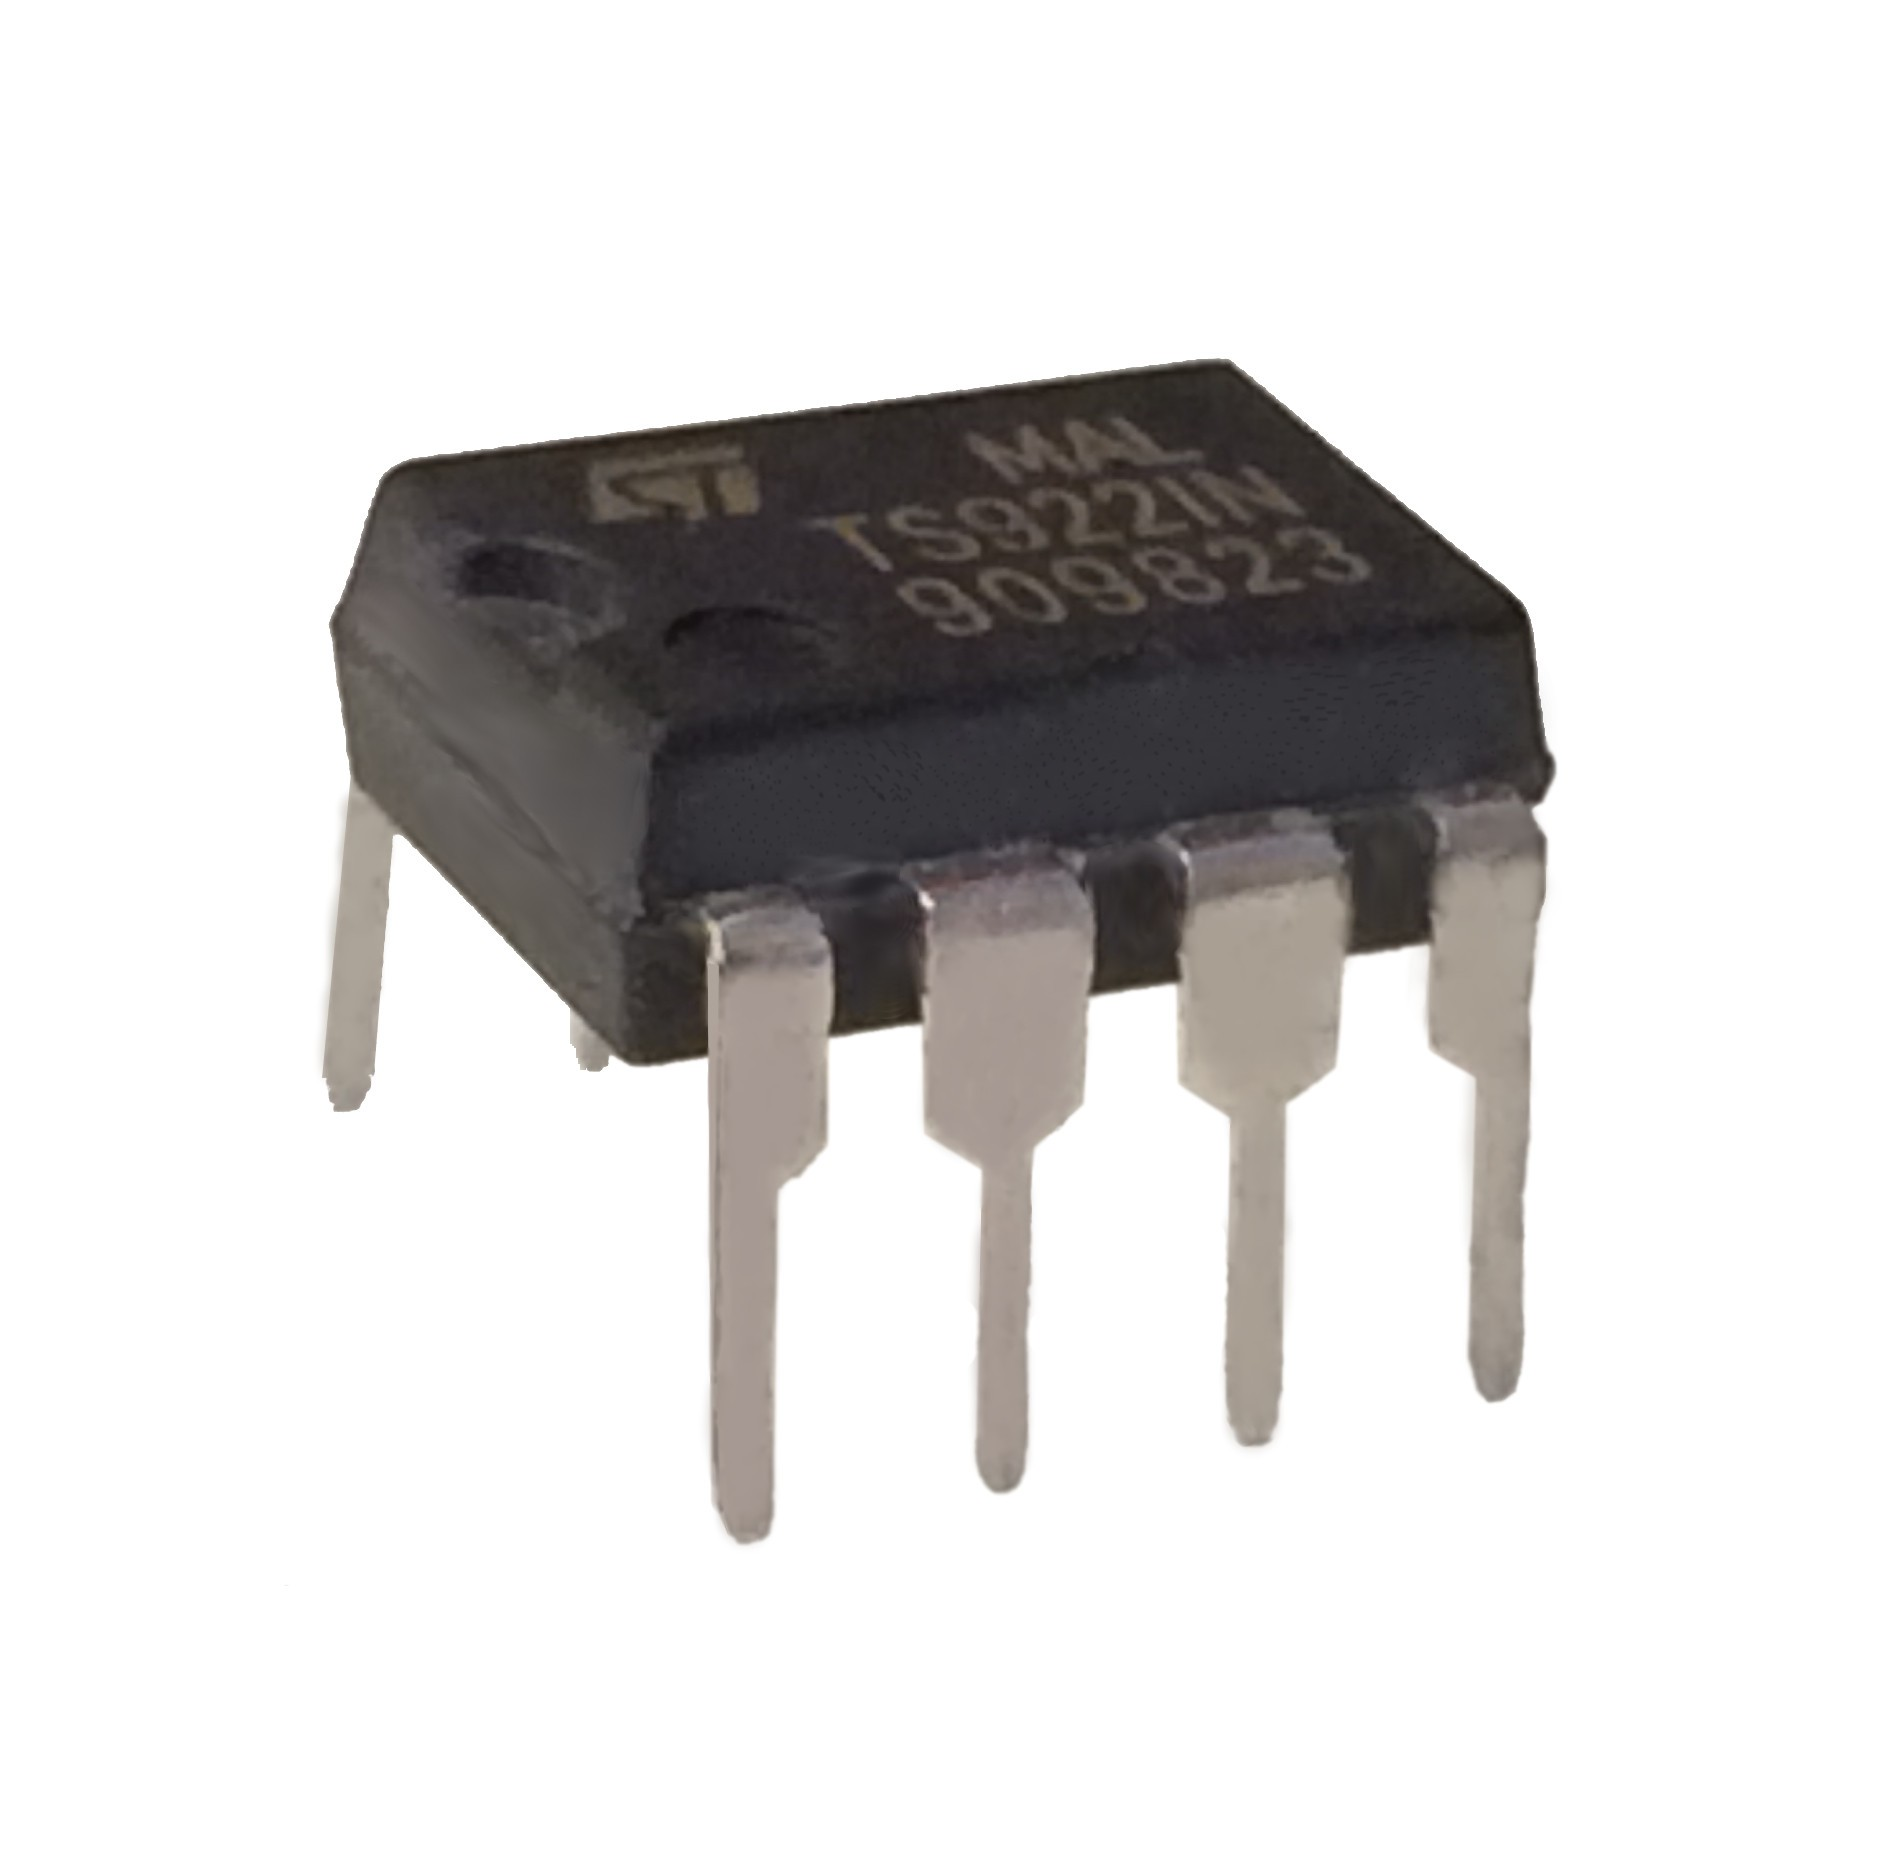 299 Op Amp Operational Amplifier Ts922 Tinkersphere Circuit Electronics Led Voltmeter For Car Battery By Lm324